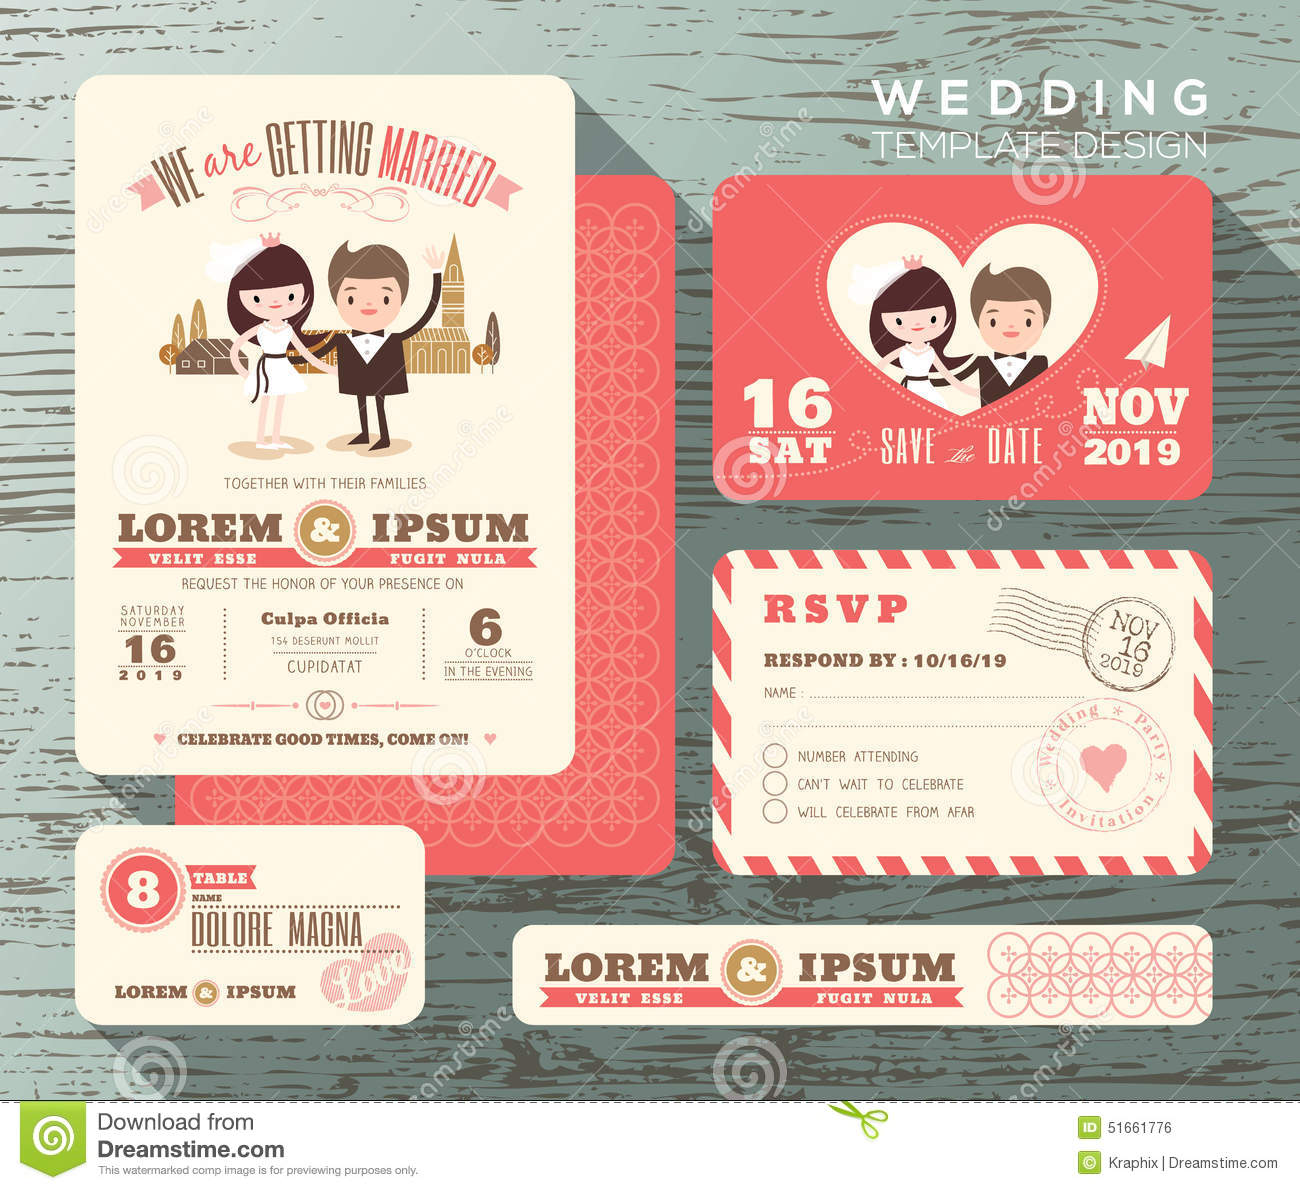 Cute Groom And Bride Couple Wedding Invitation Set Design Template - Cute wedding invitation templates